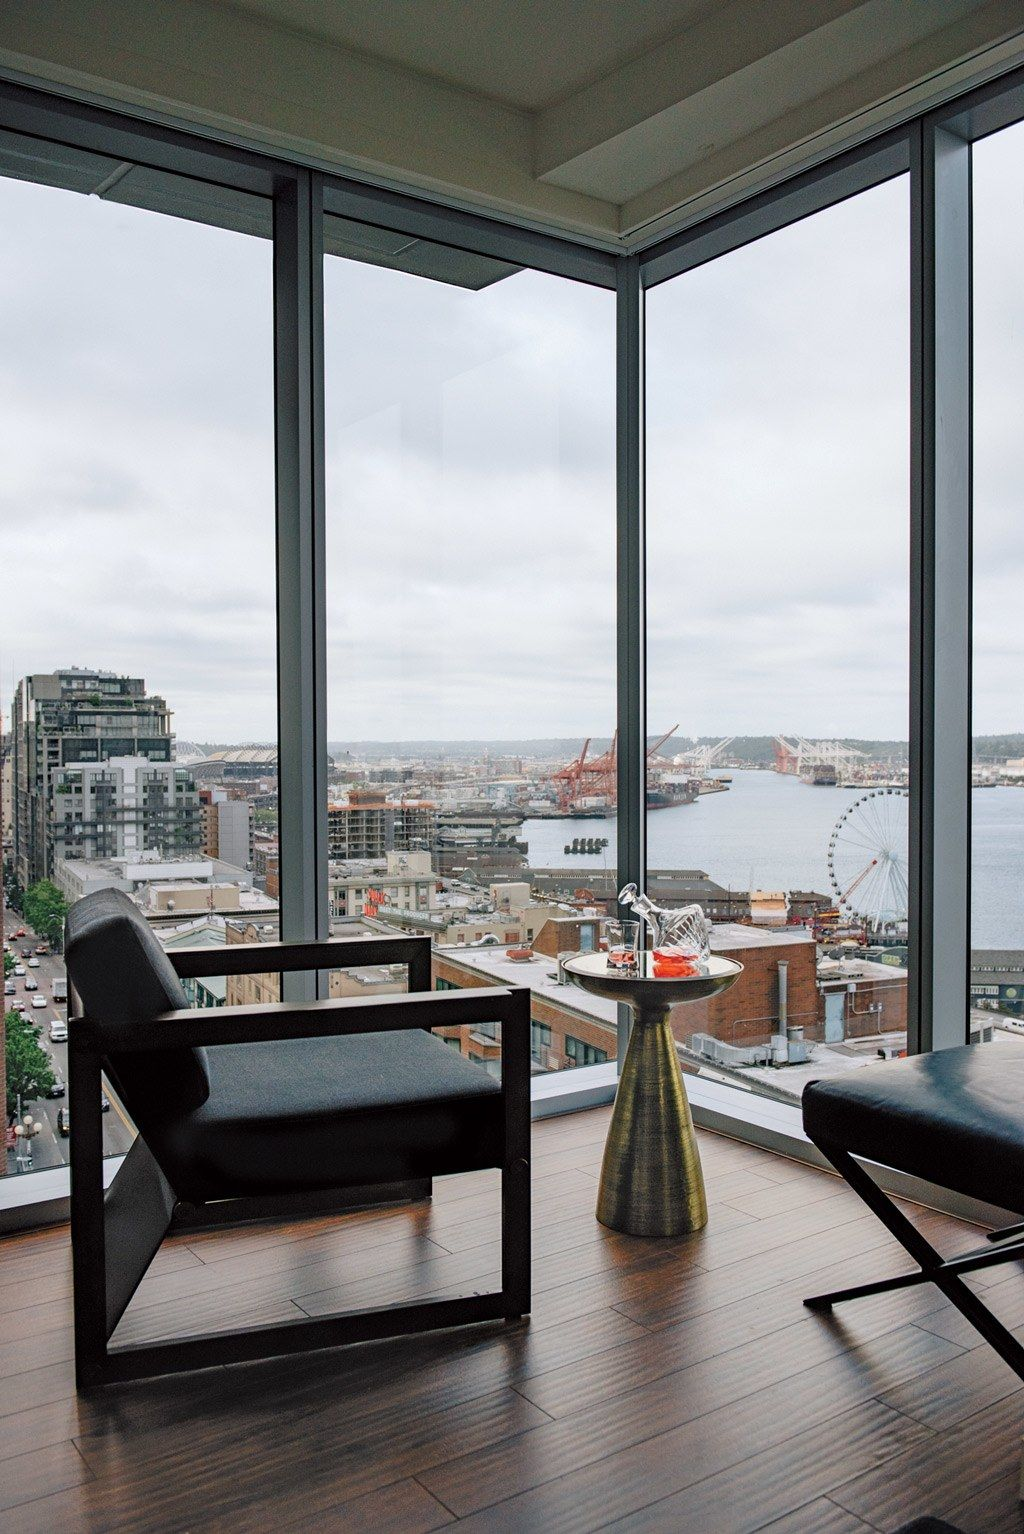 And The Number One Hotel In Downtown Seattle Is Four Seasons